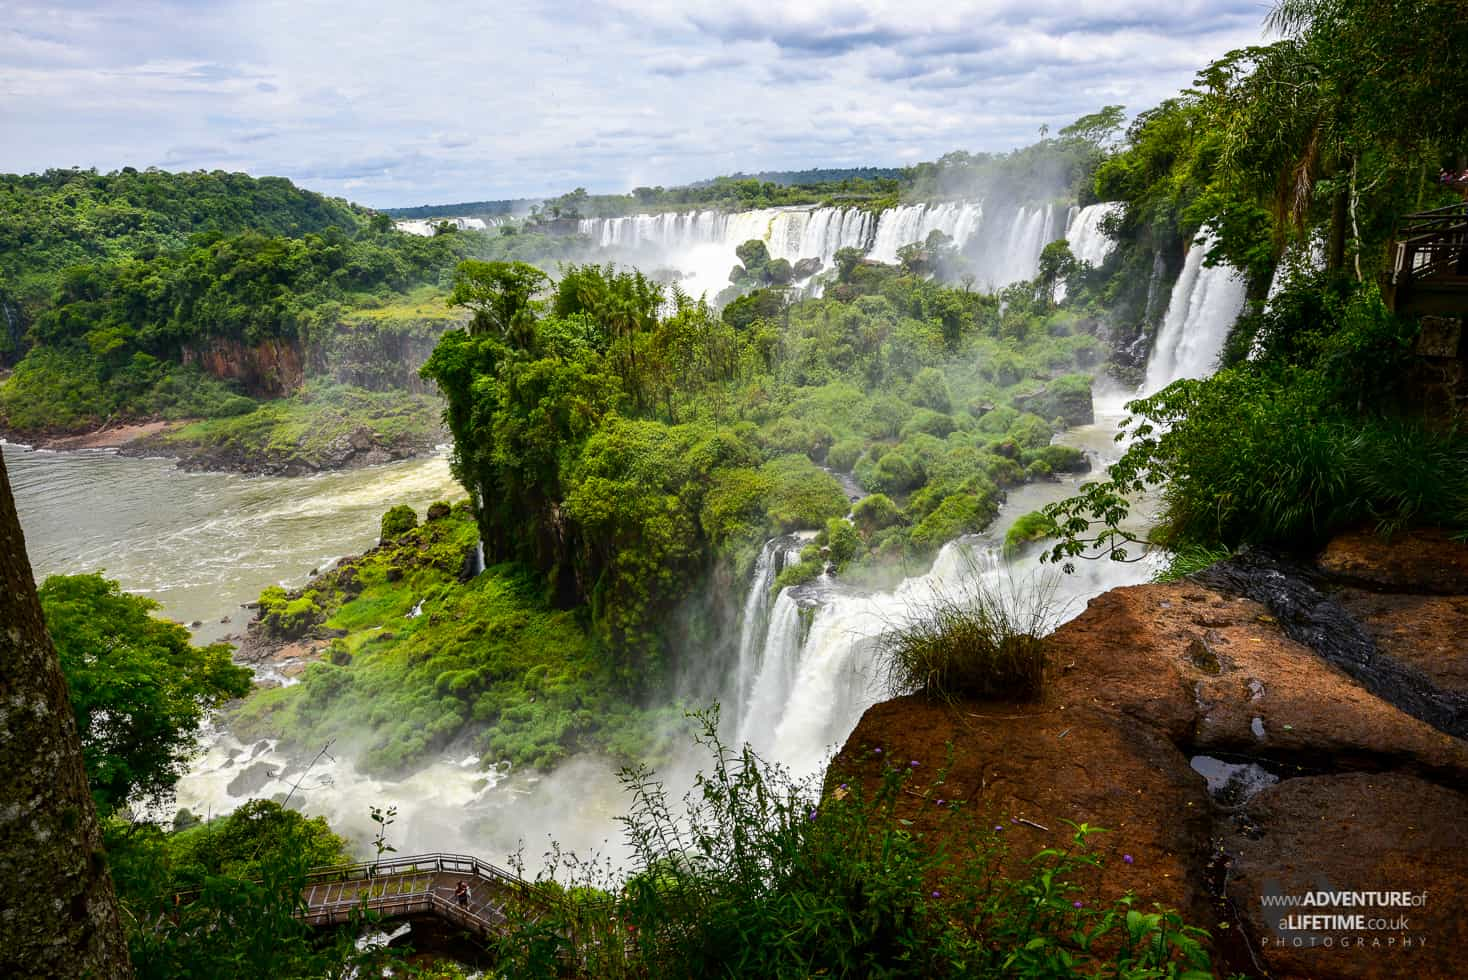 The Landscape of Iguazu from Argentina